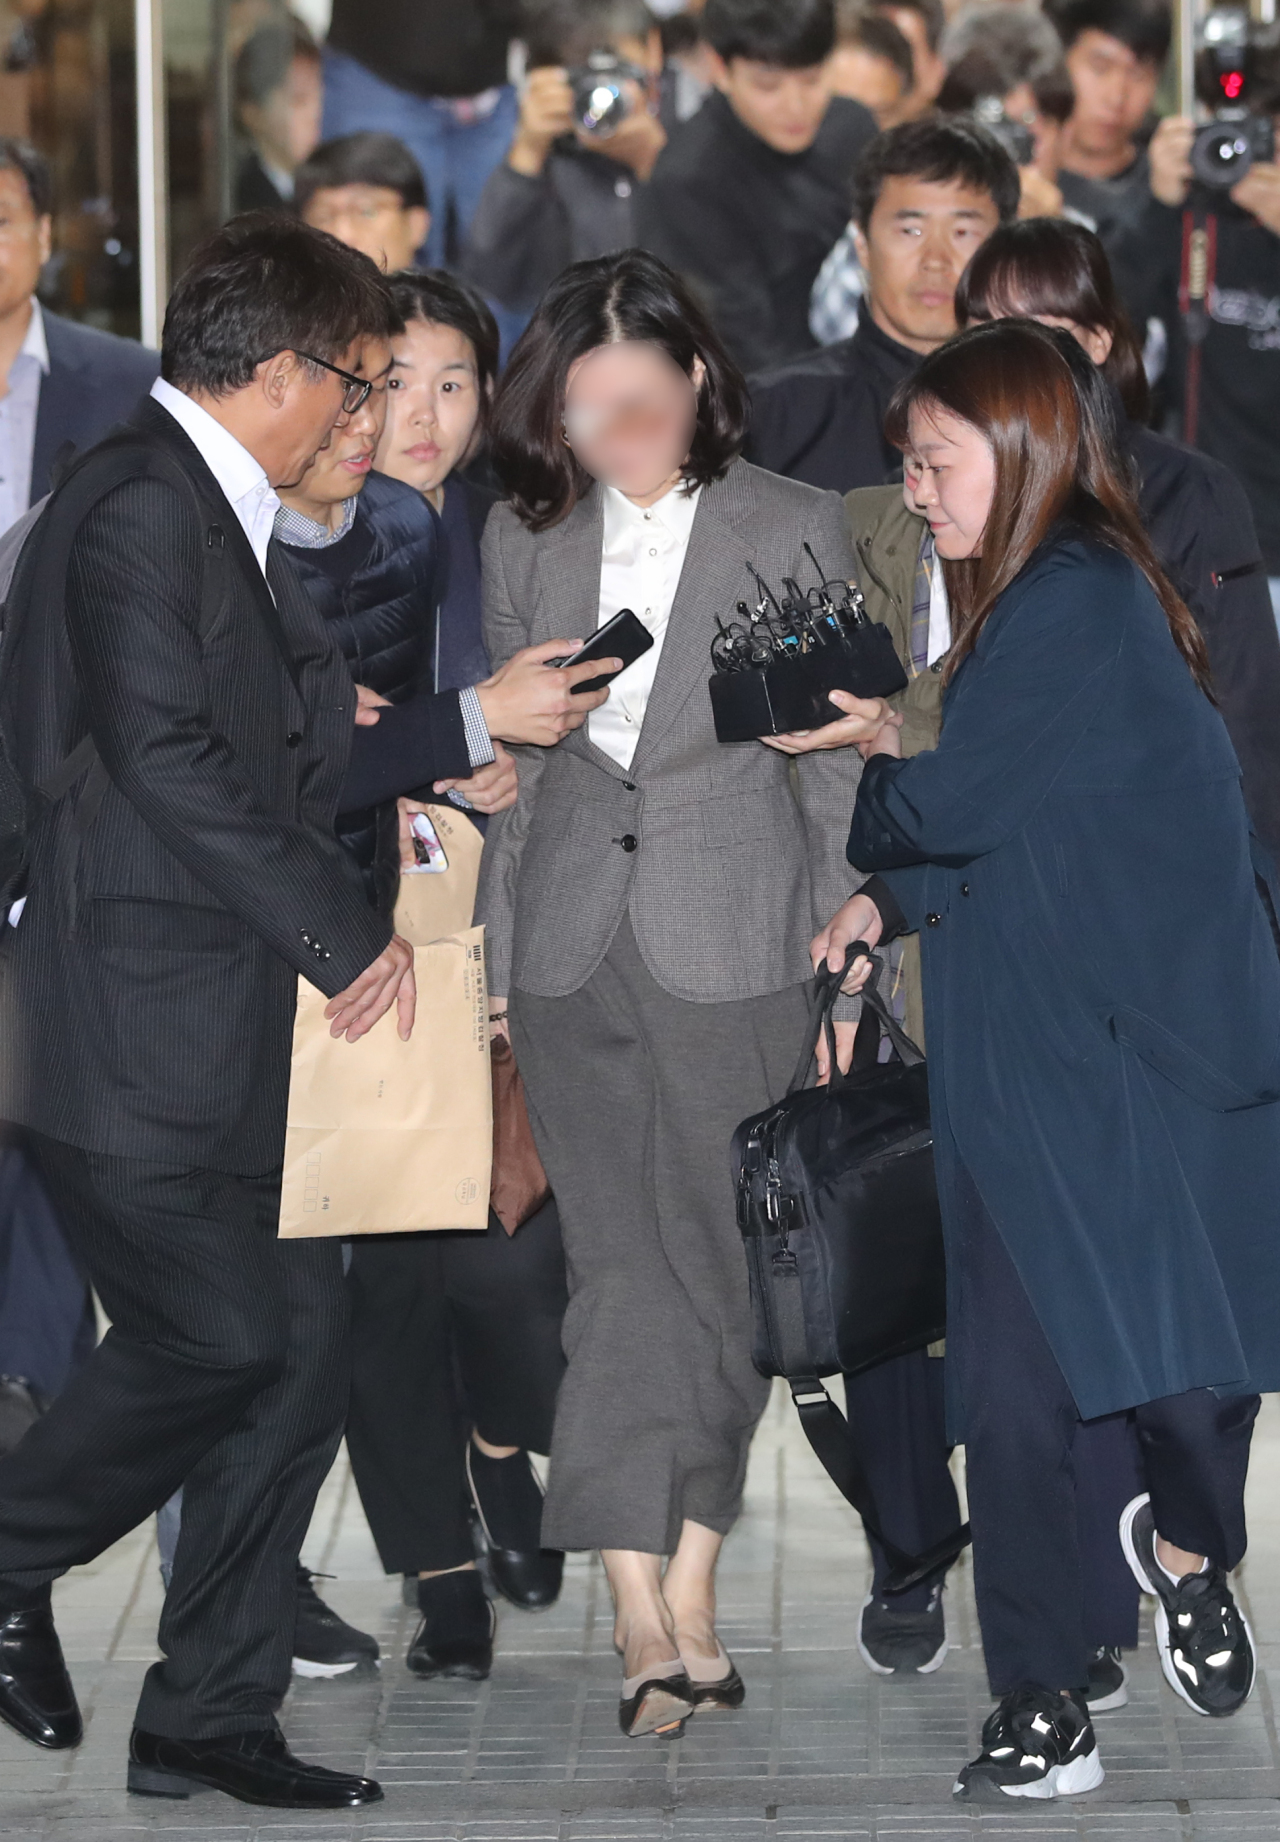 Chung Kyung-shim (center) in gray suit (Yonhap)